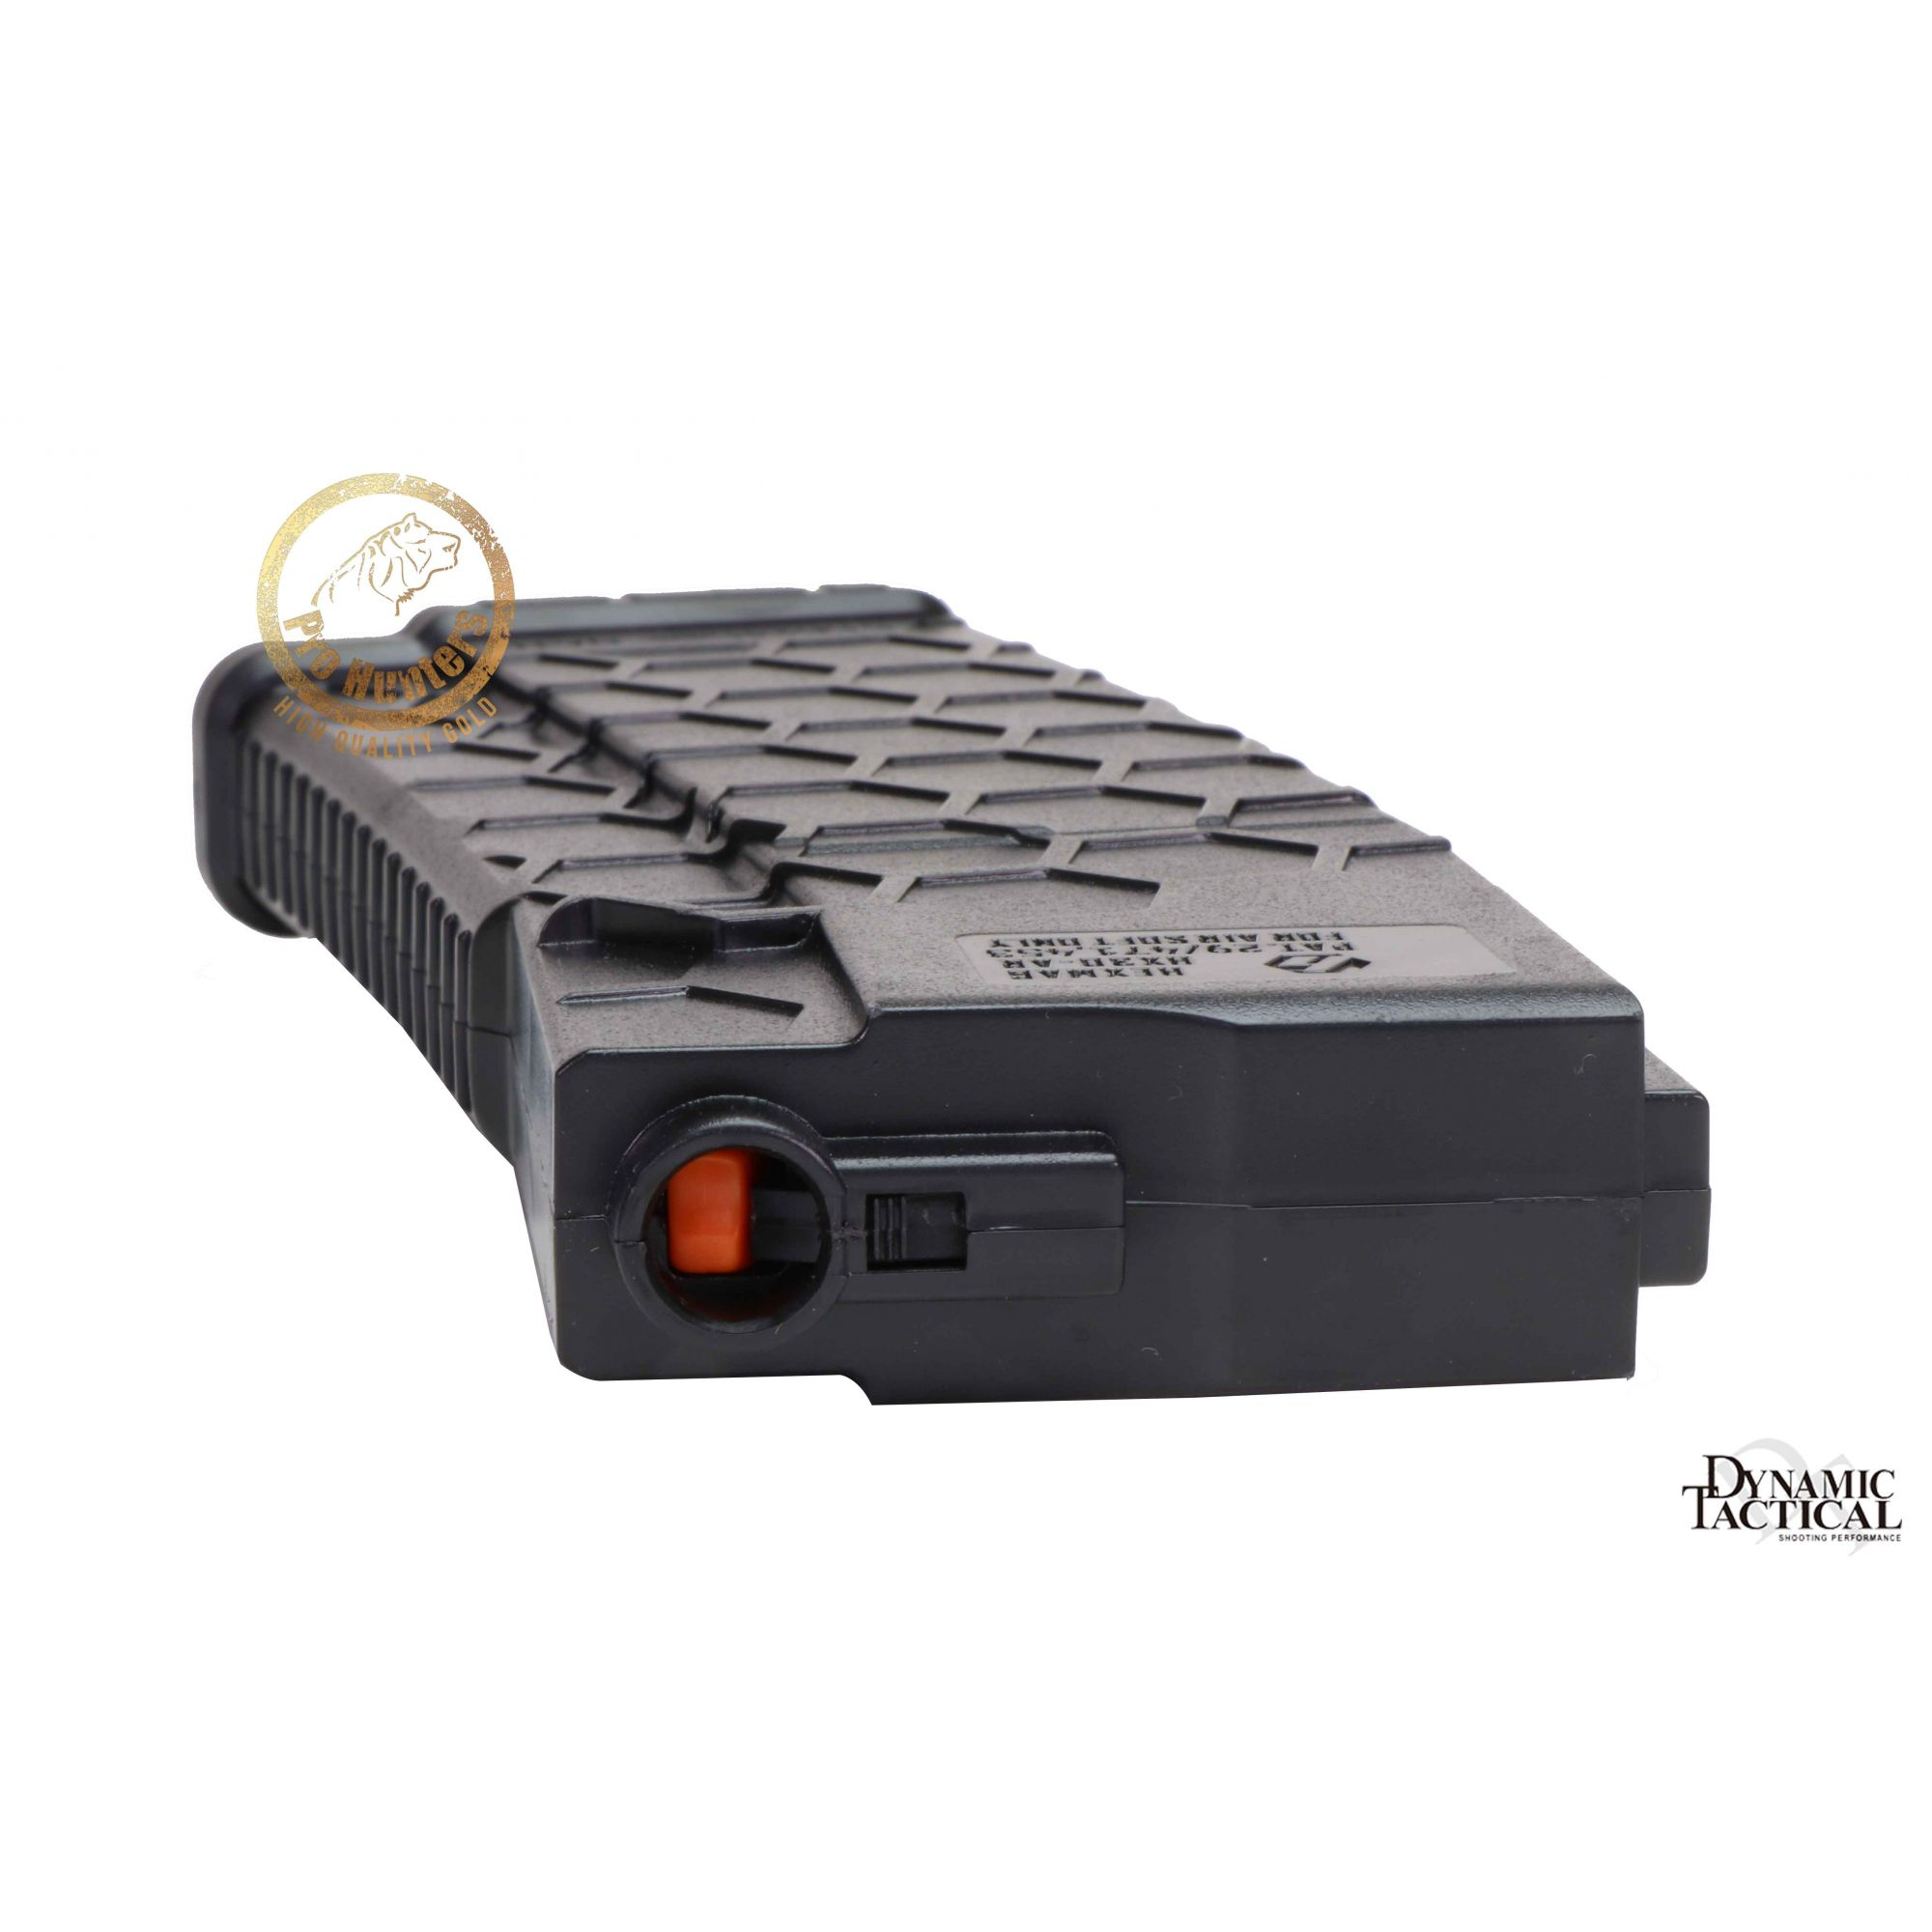 Rifle Airsoft Dytac MK4 SMR 14.5 Polegadas - Magpul Dark Earth